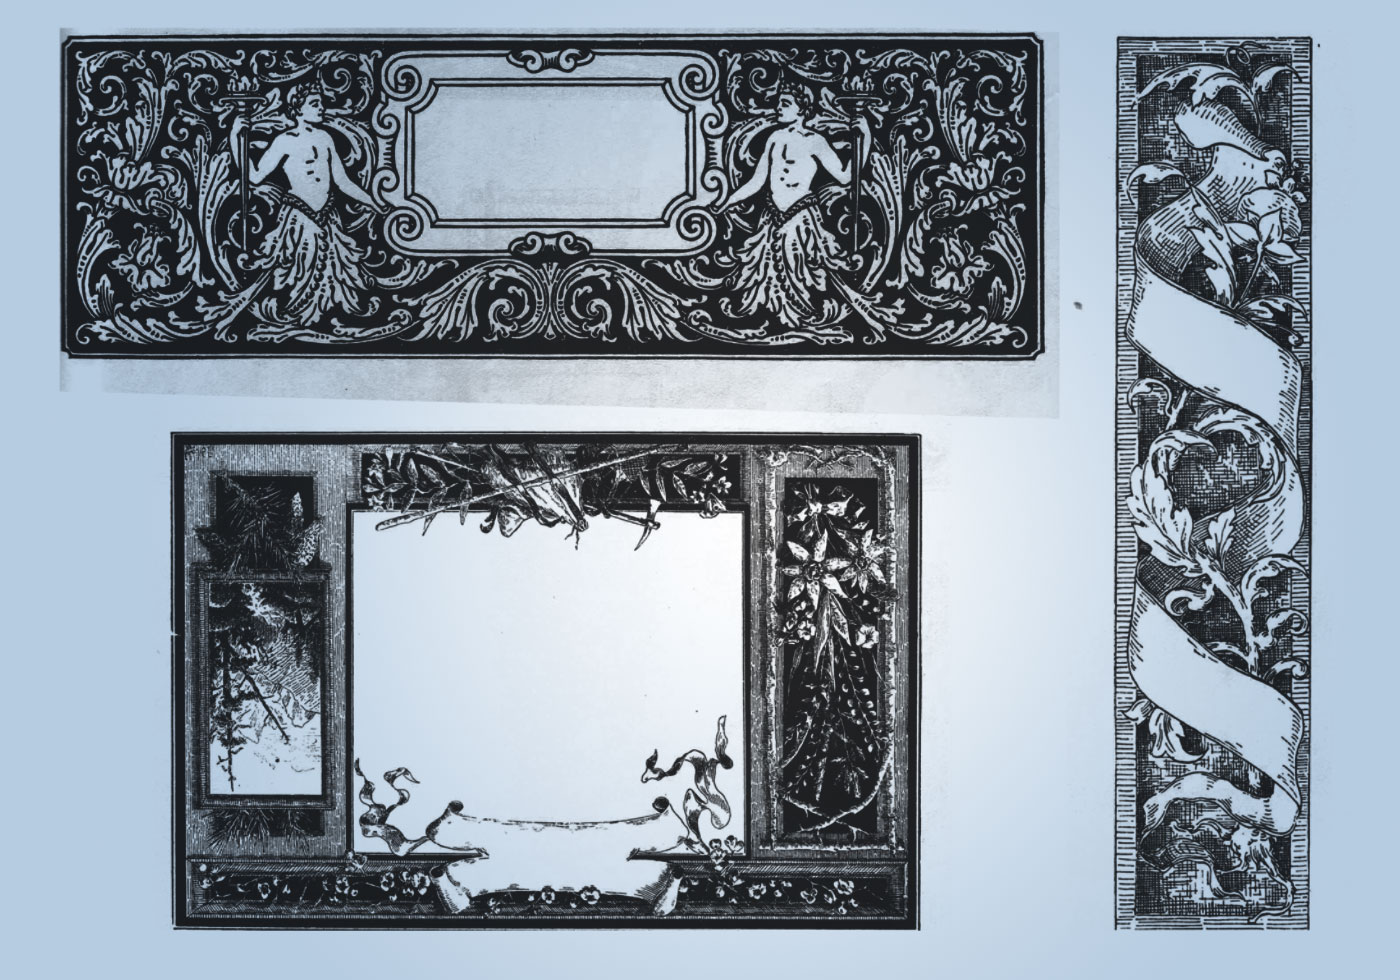 Excellent Ornate Borders - Free Photoshop Brushes at ...